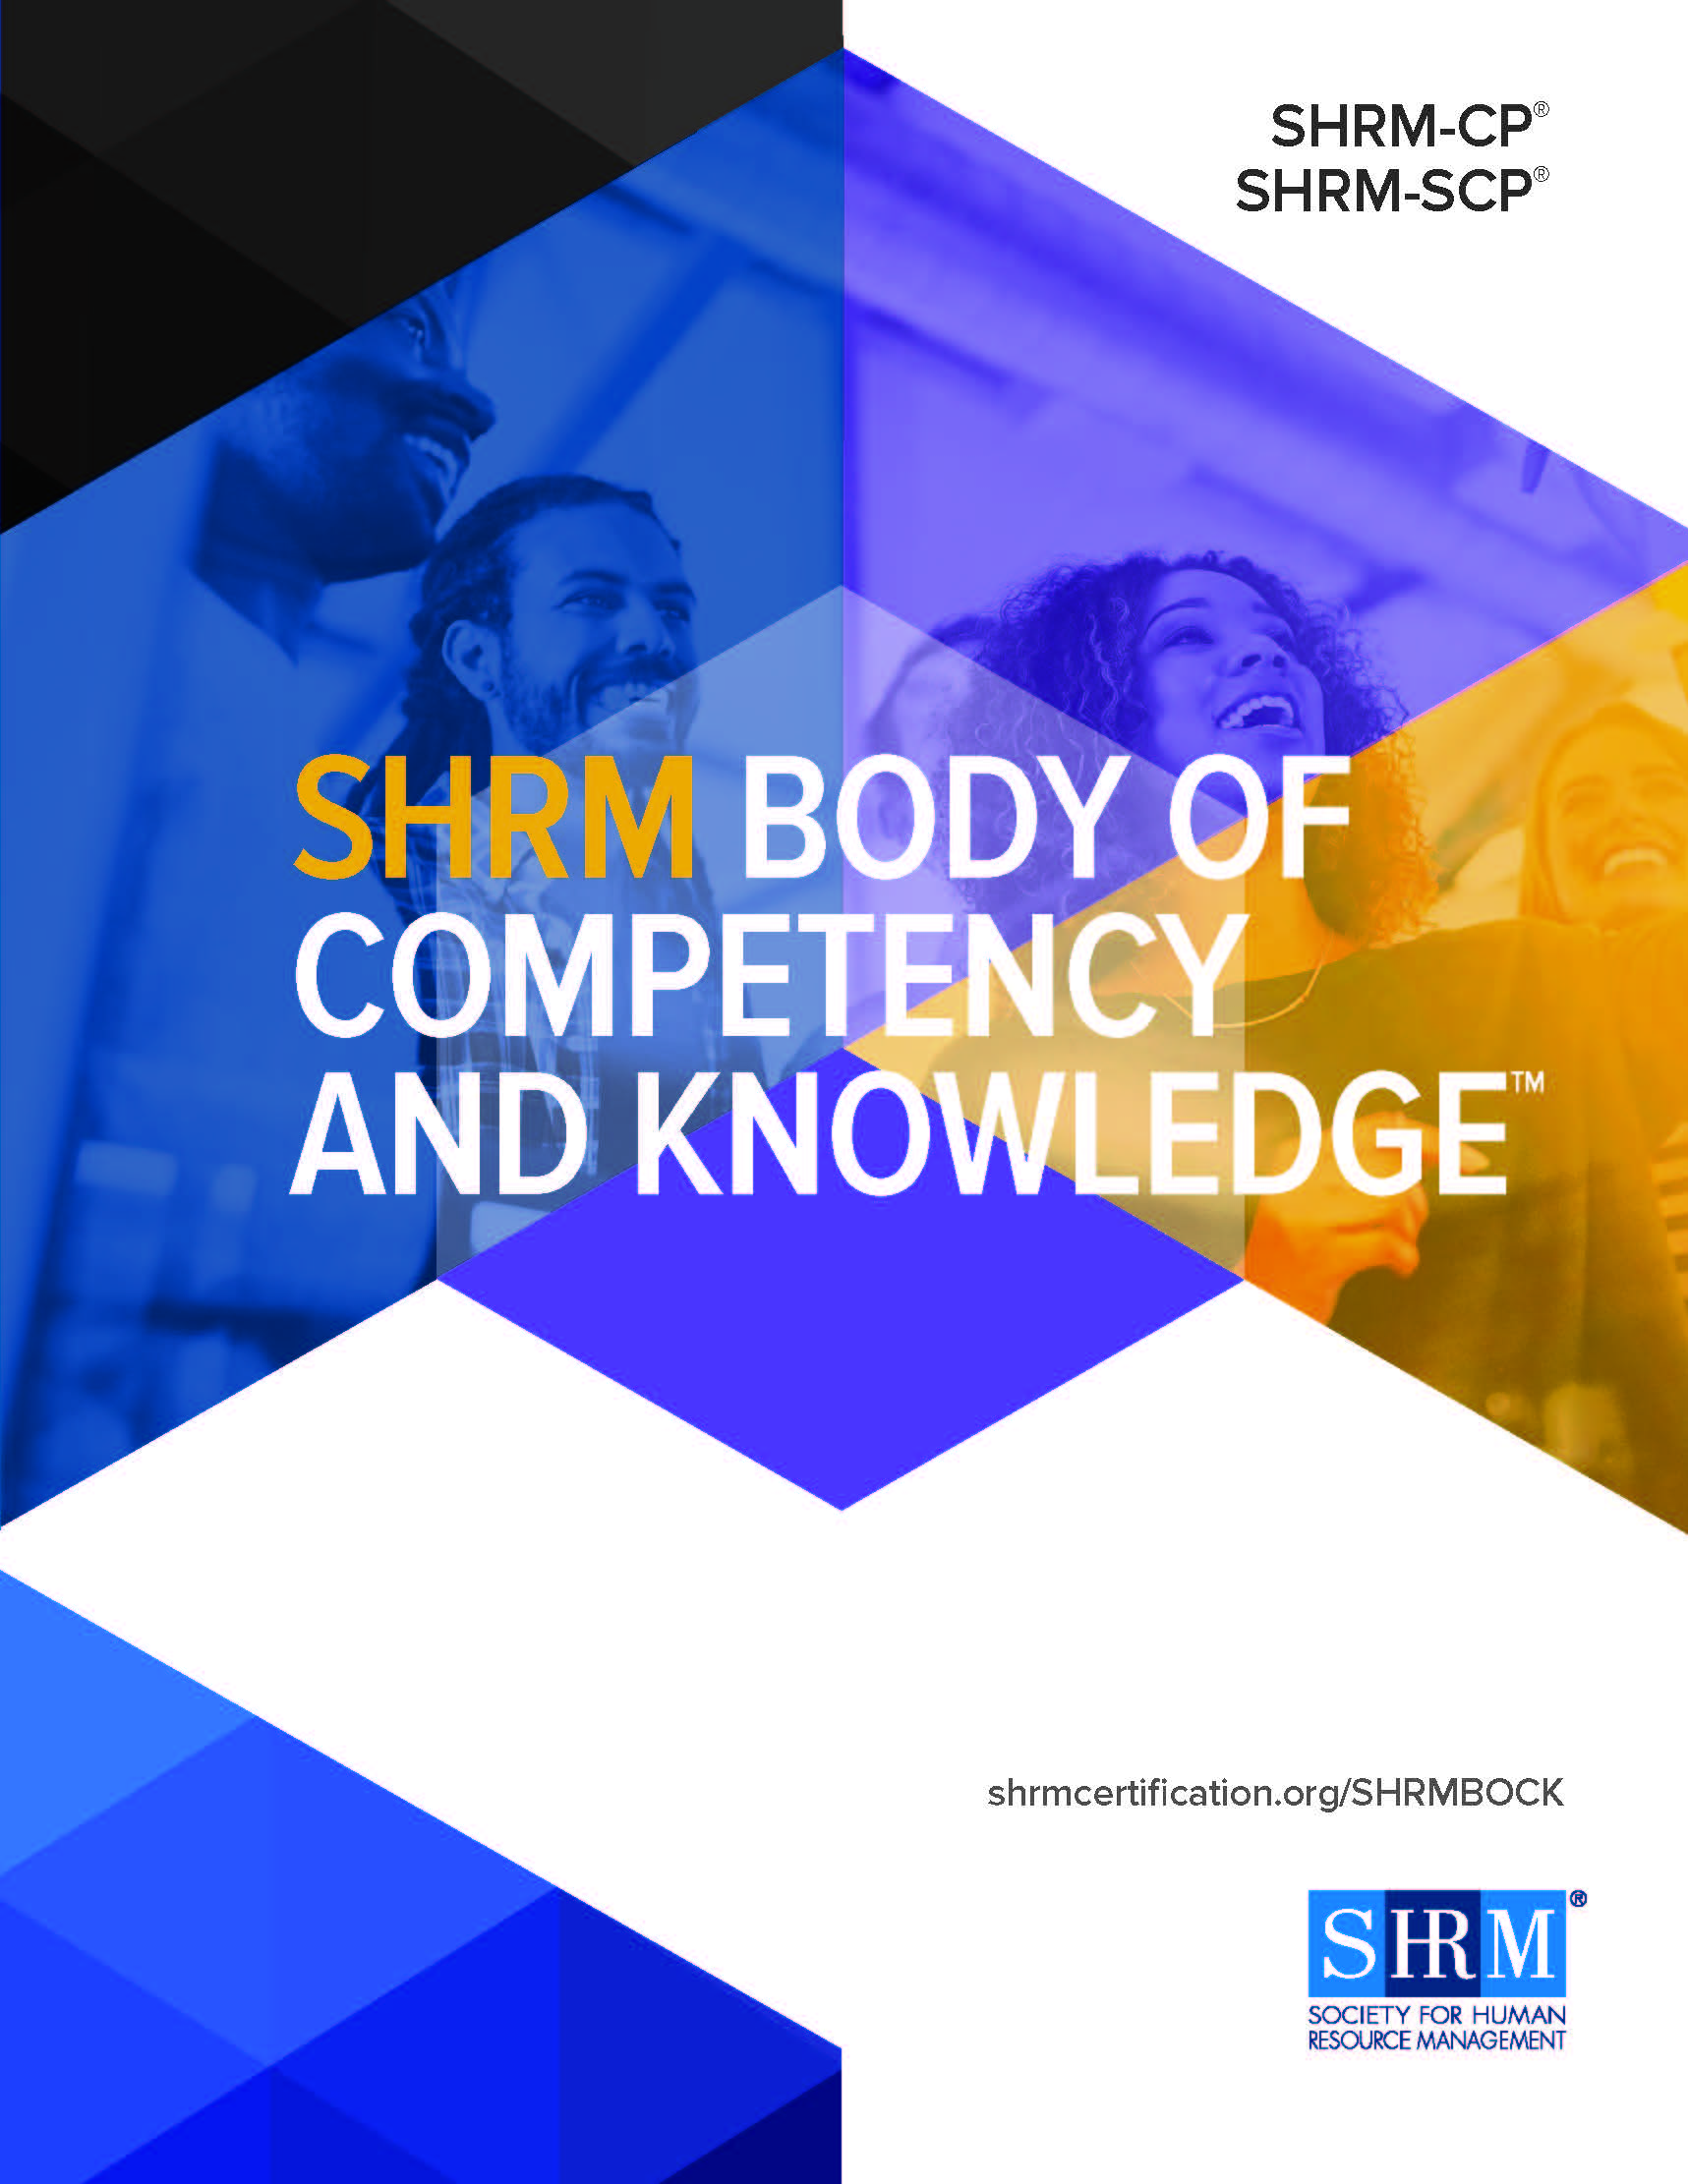 SHRM Body of Competency & Knowledge